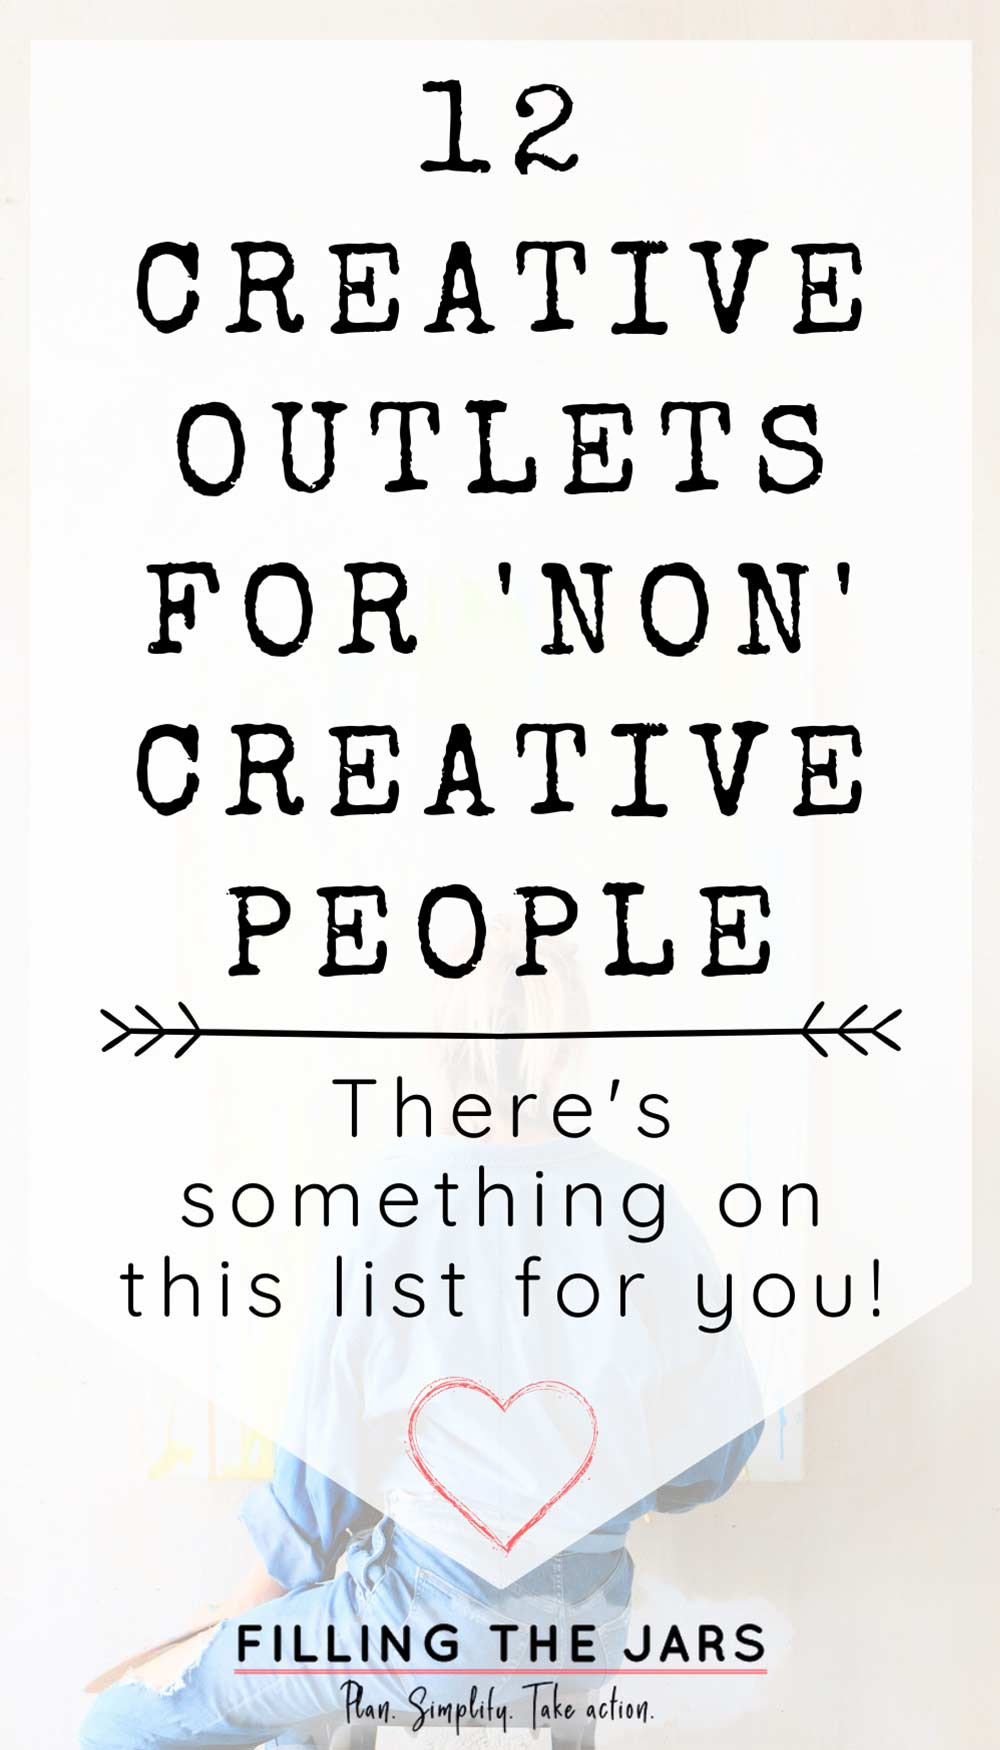 Text creative outlets for non-creatives on white background over image of blonde woman in denim clothing painting a canvas hung on white wall.